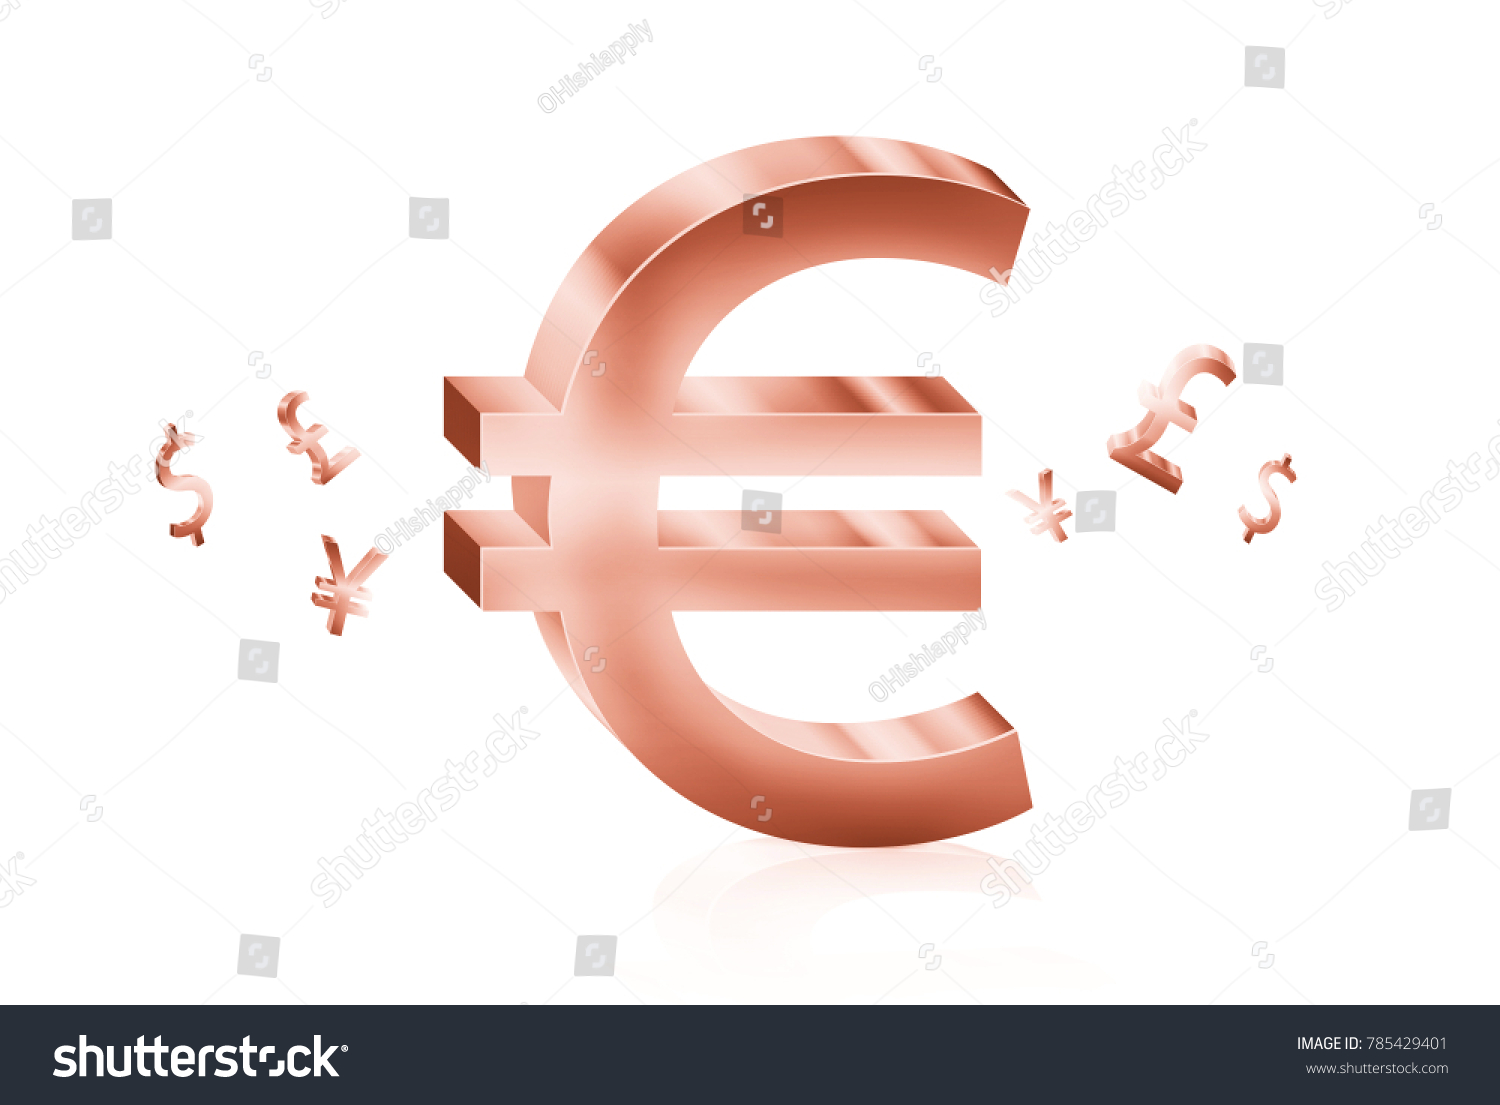 Rose gold metal euro currency symbols stock illustration 785429401 rose gold metal of euro currency symbols forex trading concept buycottarizona